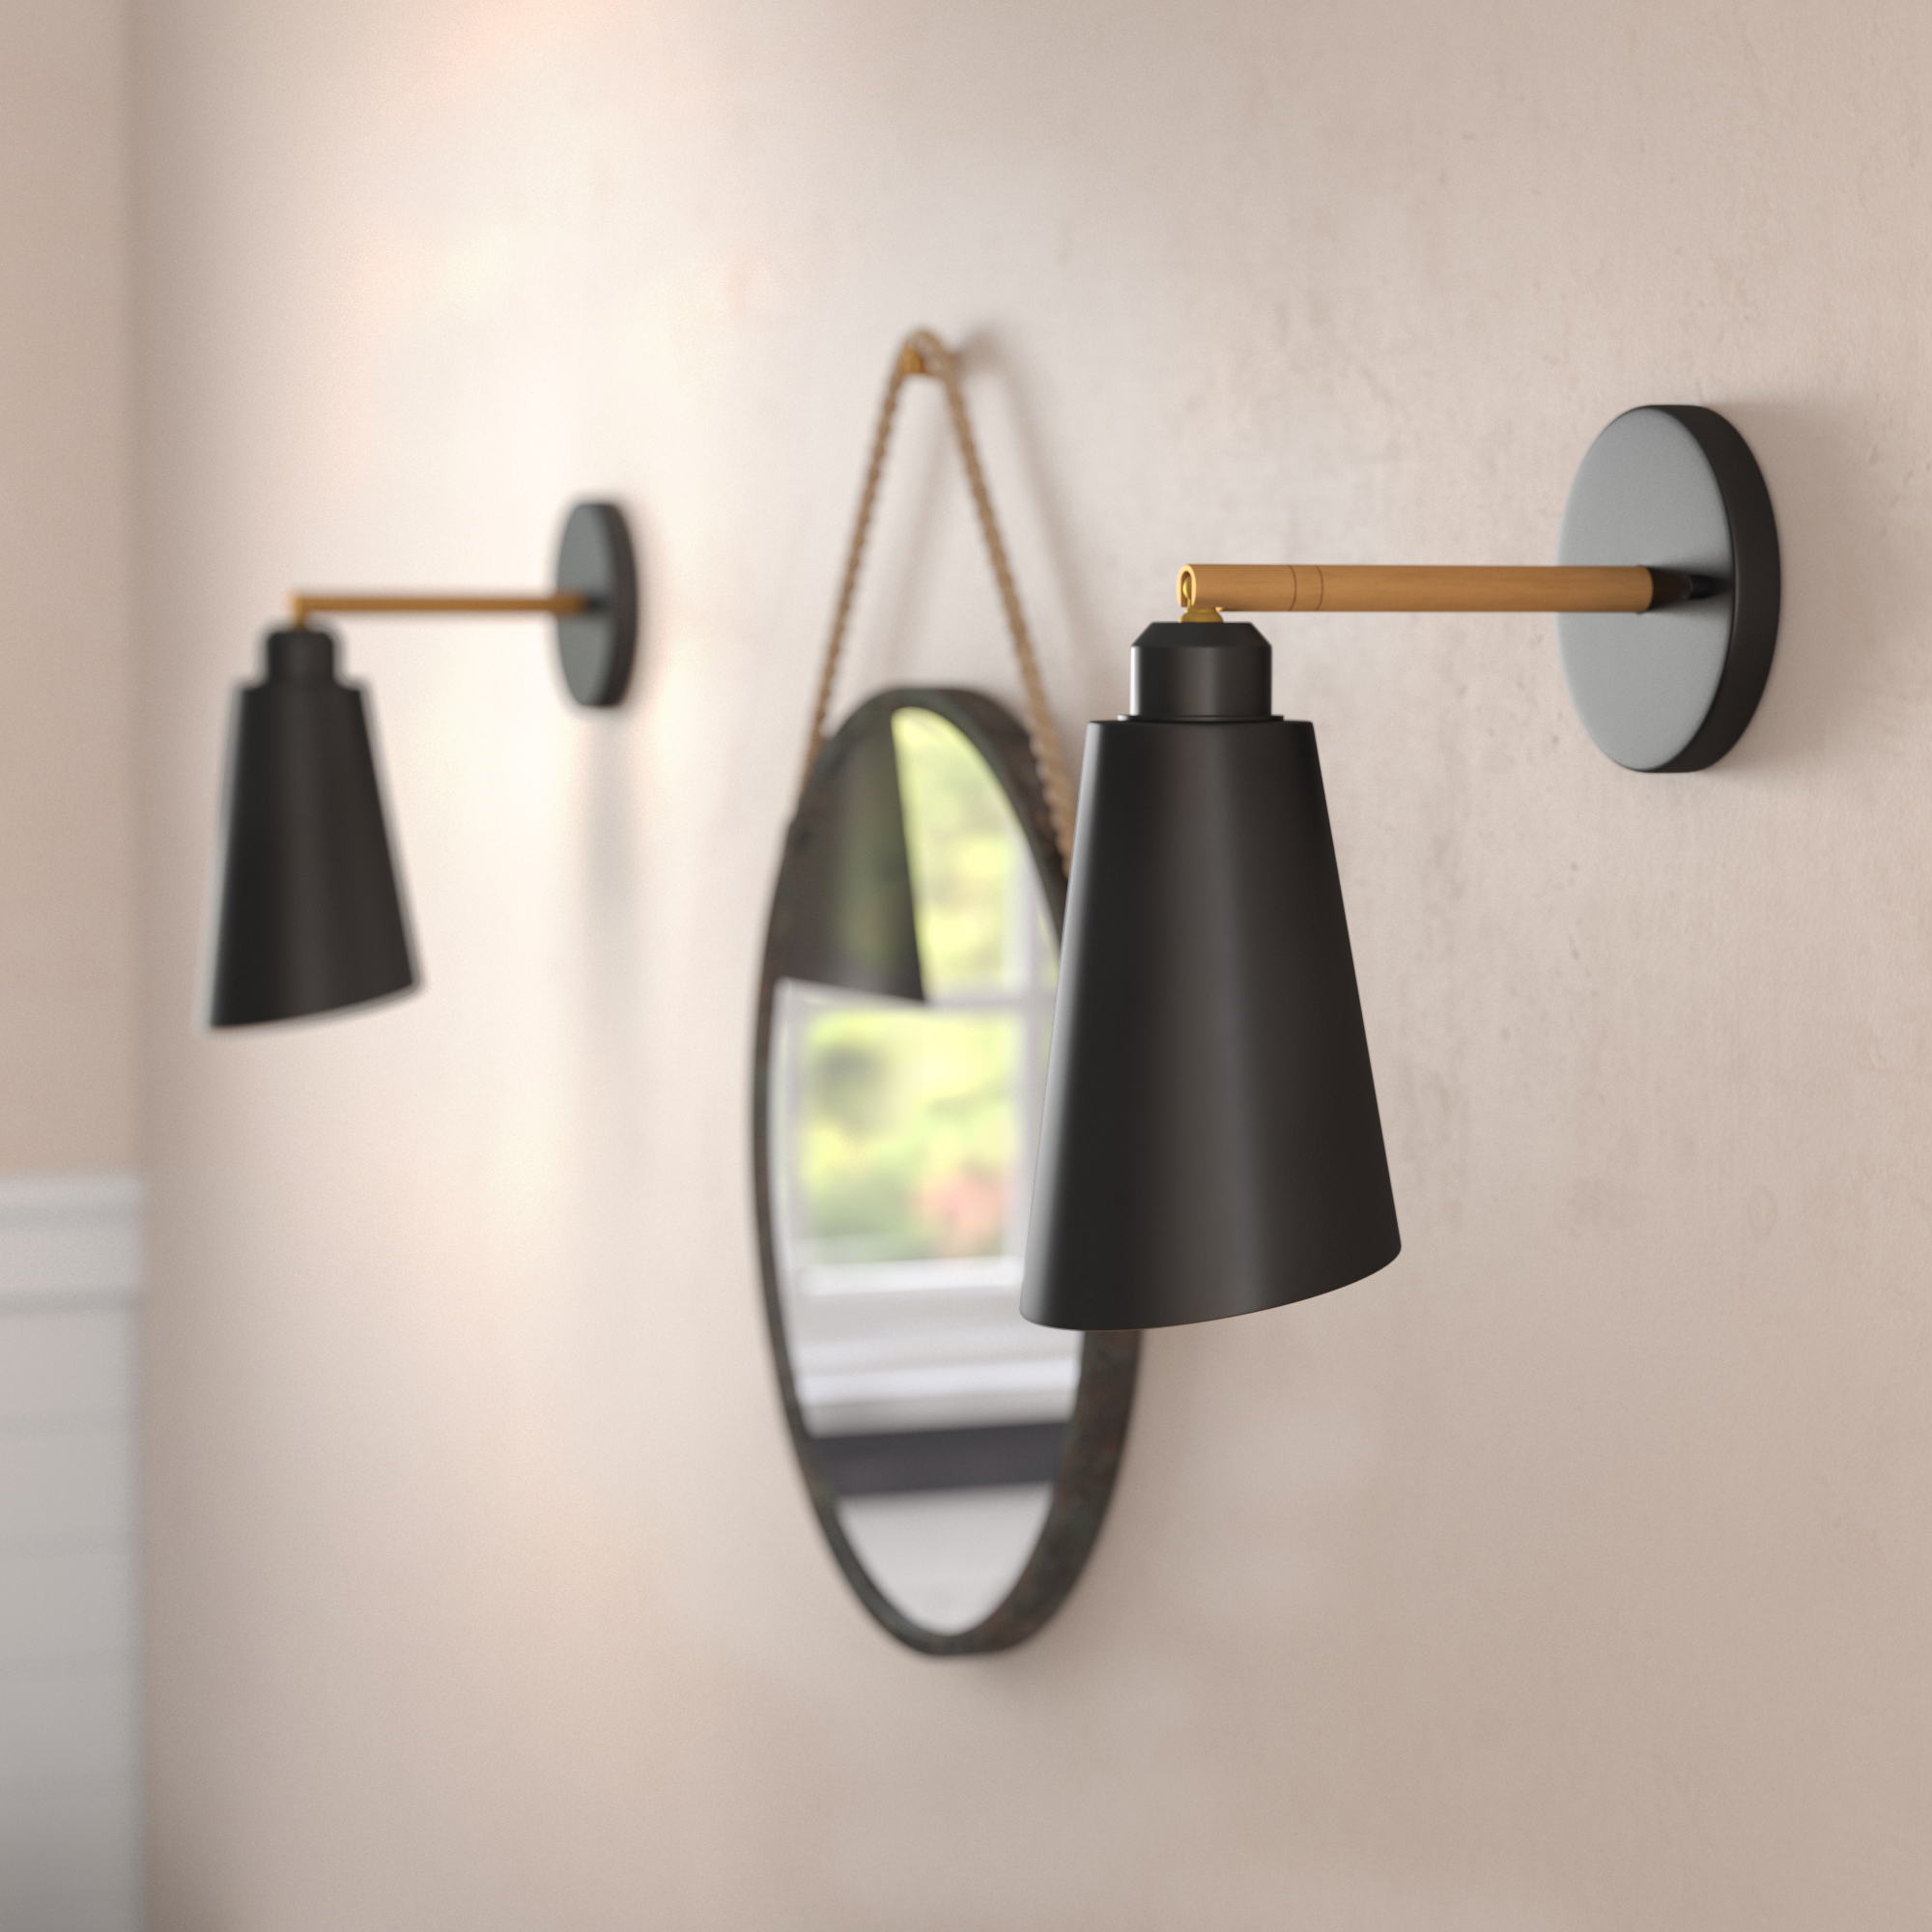 Modern Lighting Allmodern Lamps Plus Pendant Decorative Electrical Wiring Wall Sconces